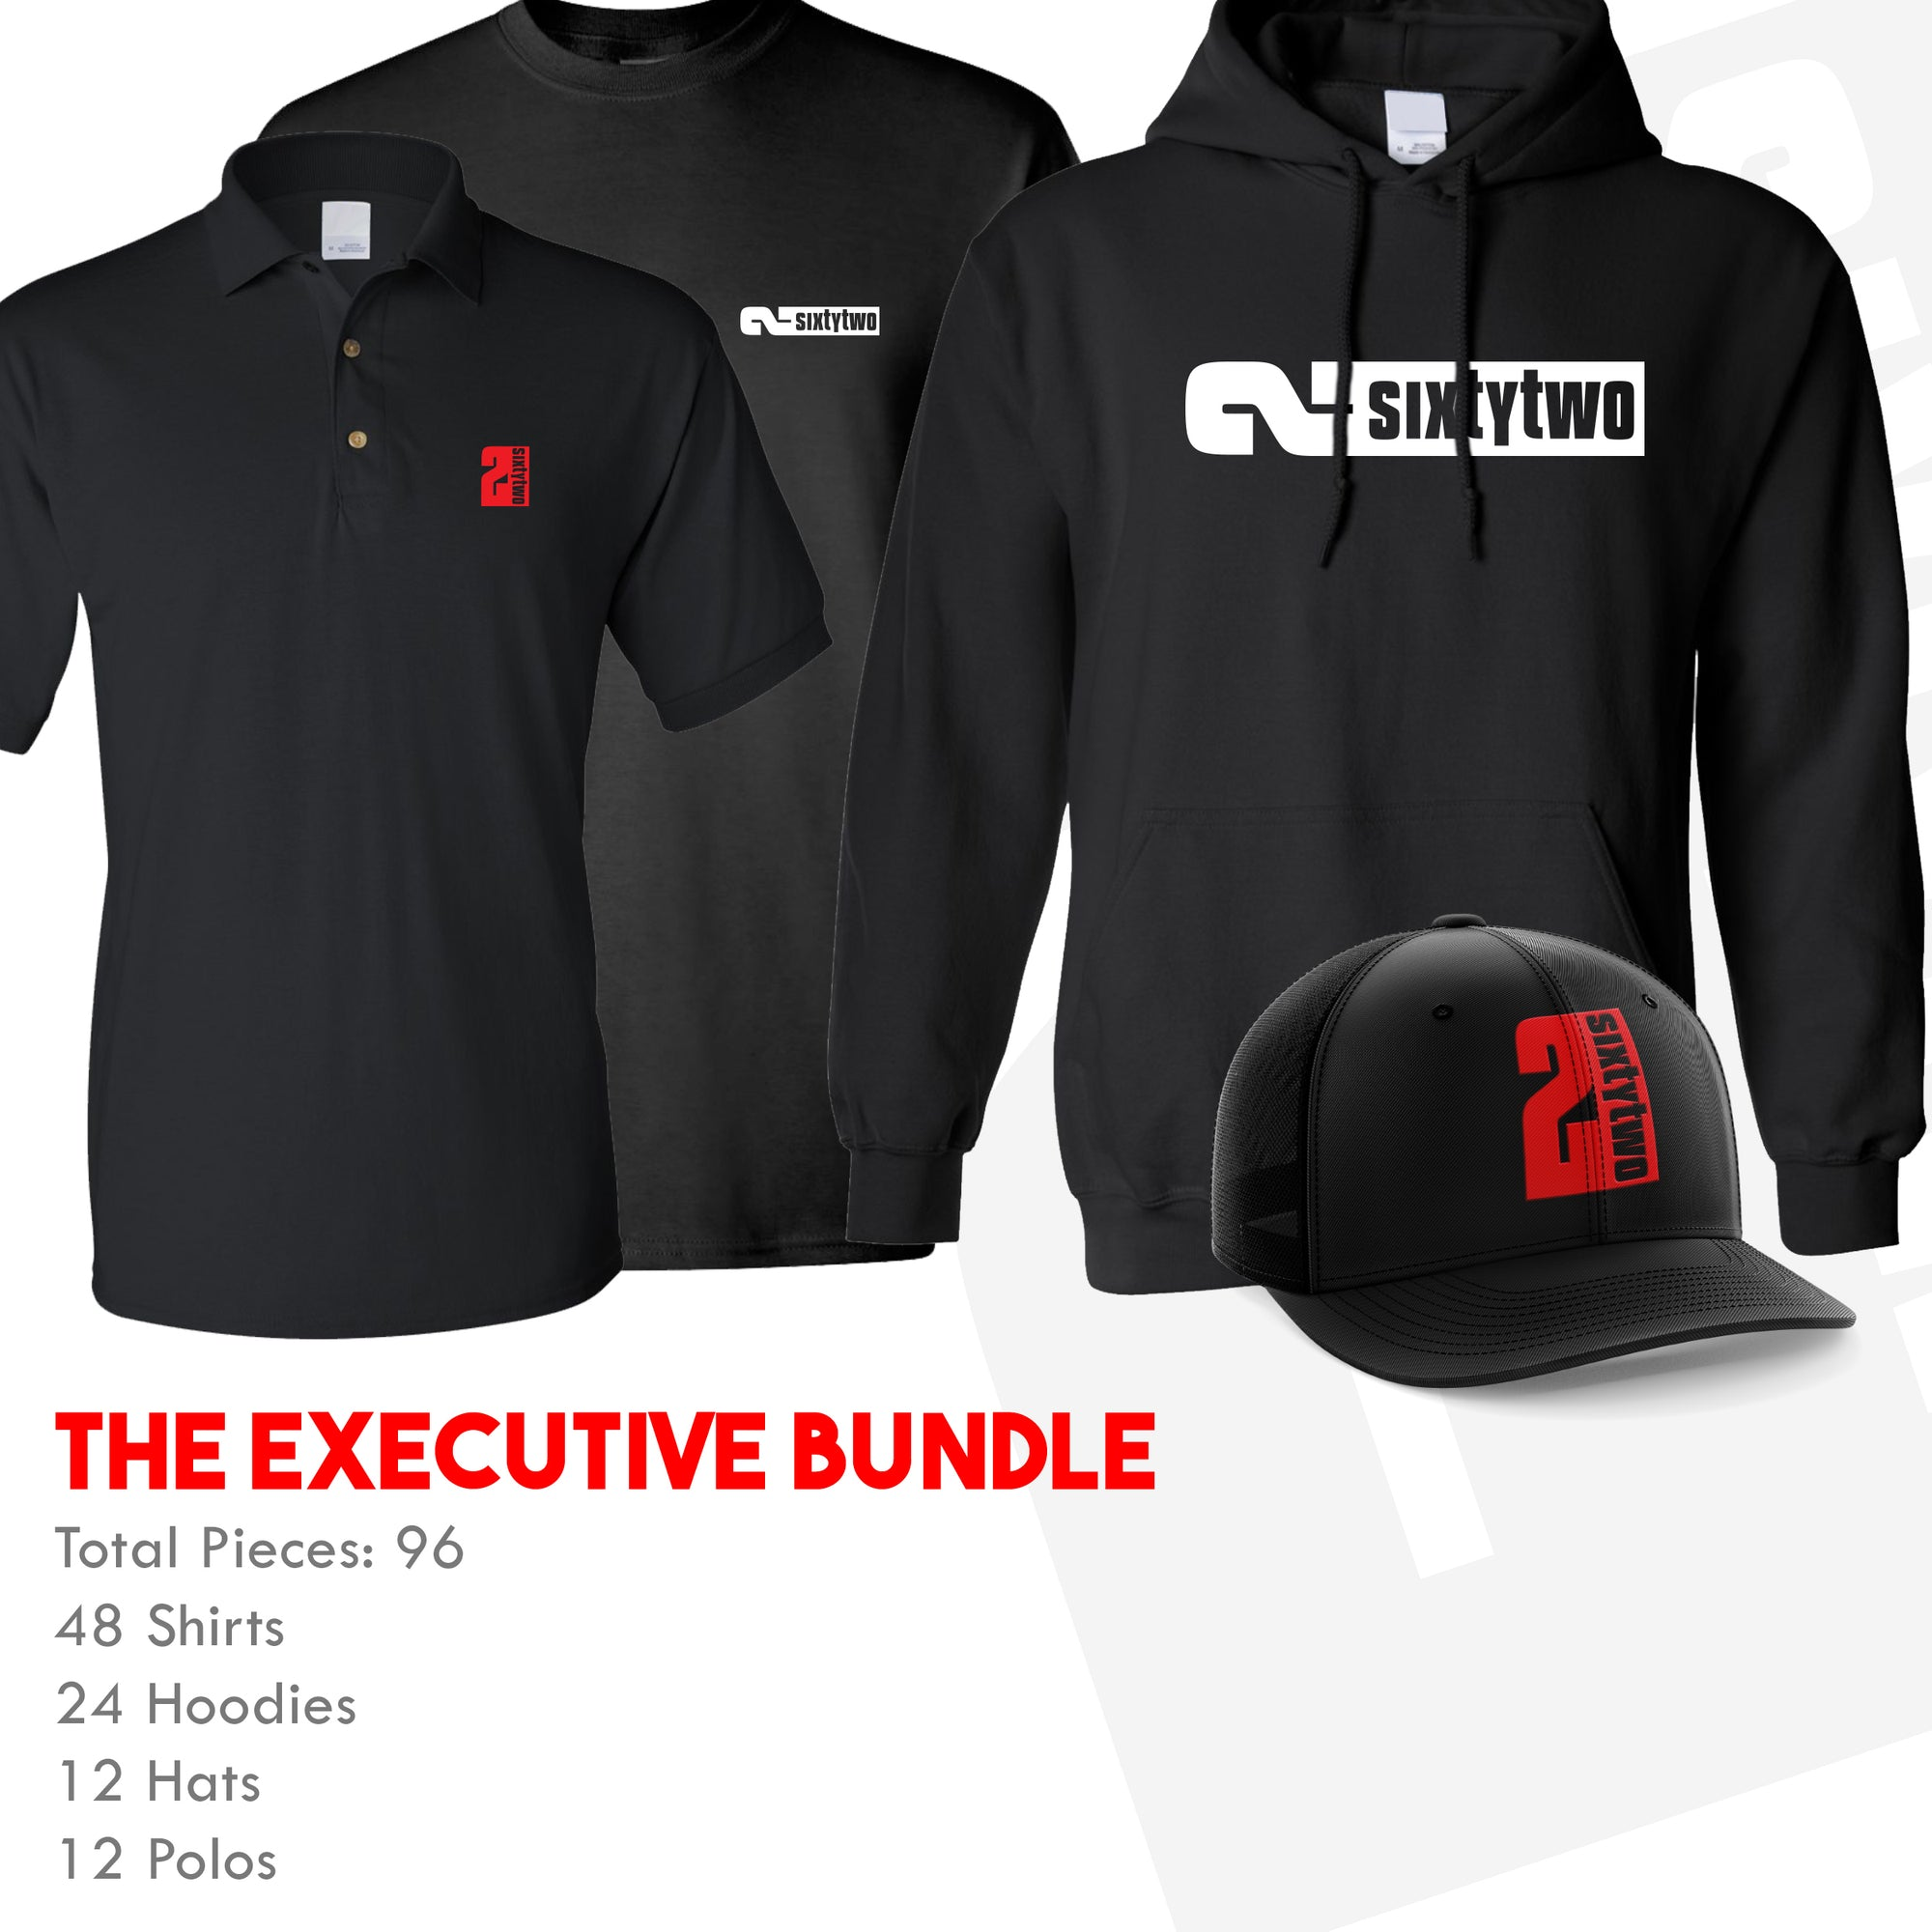 The Executive Bundle